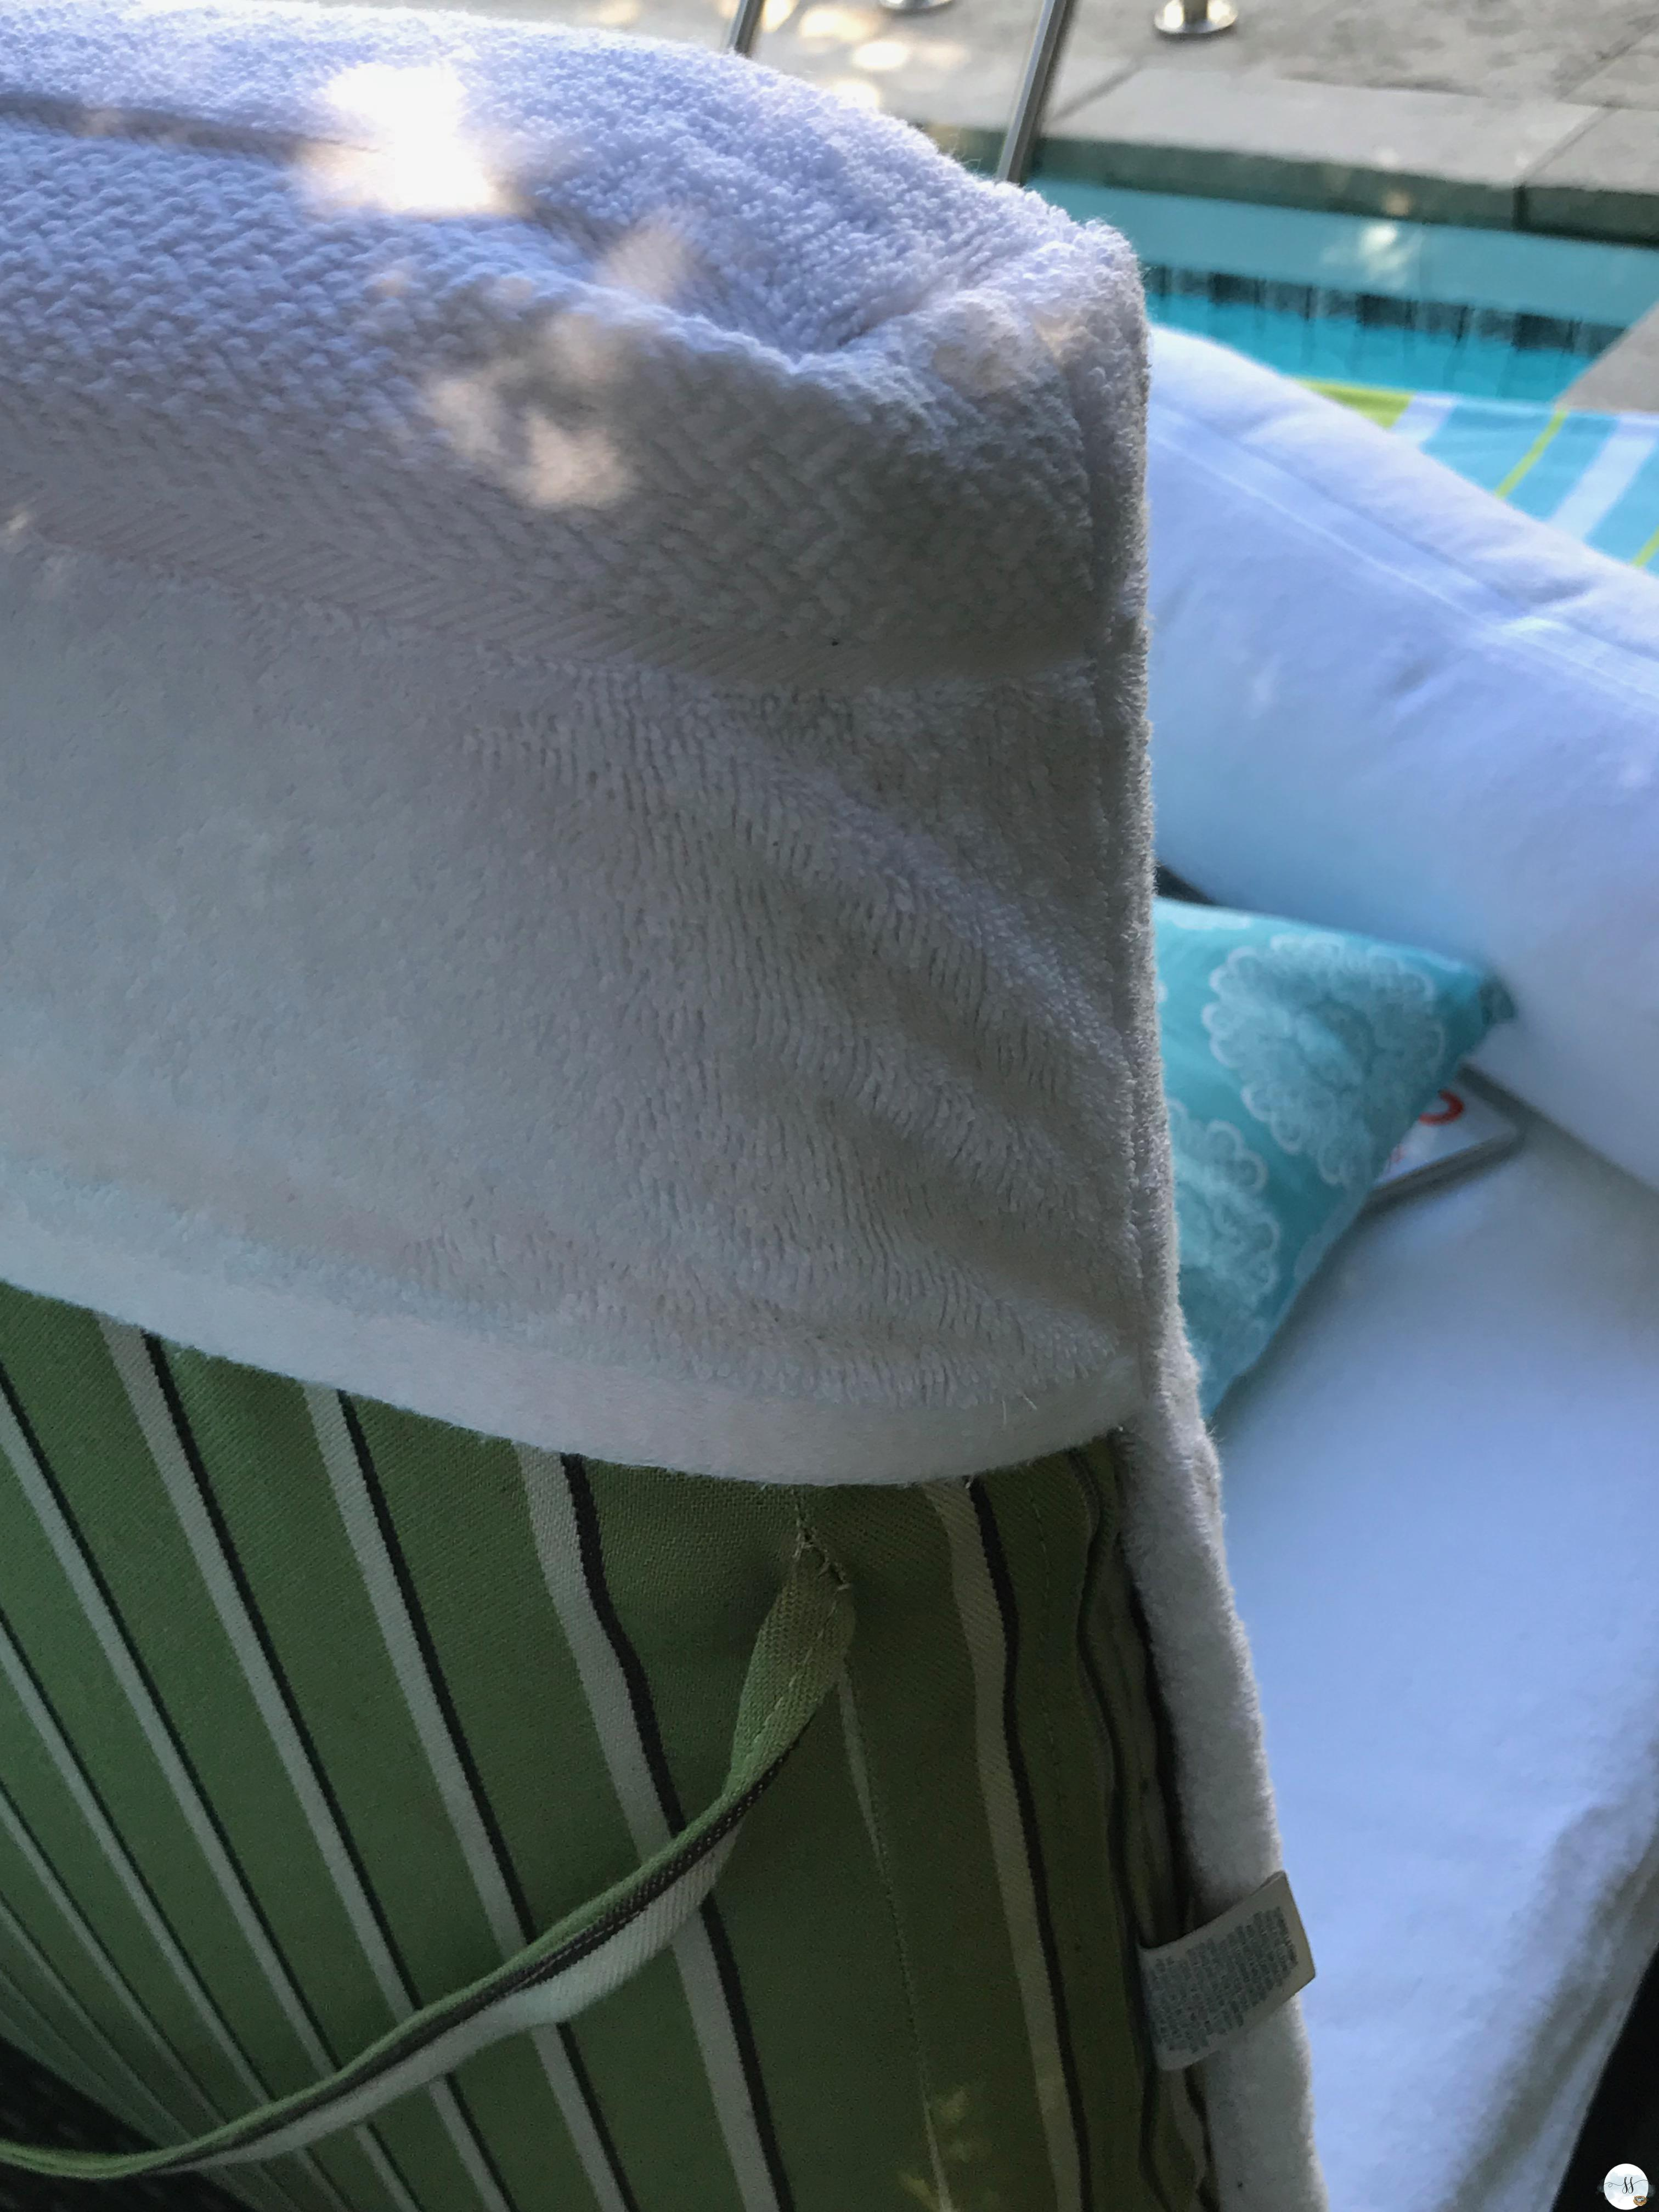 slipcovers made from towels for this great DIY project.